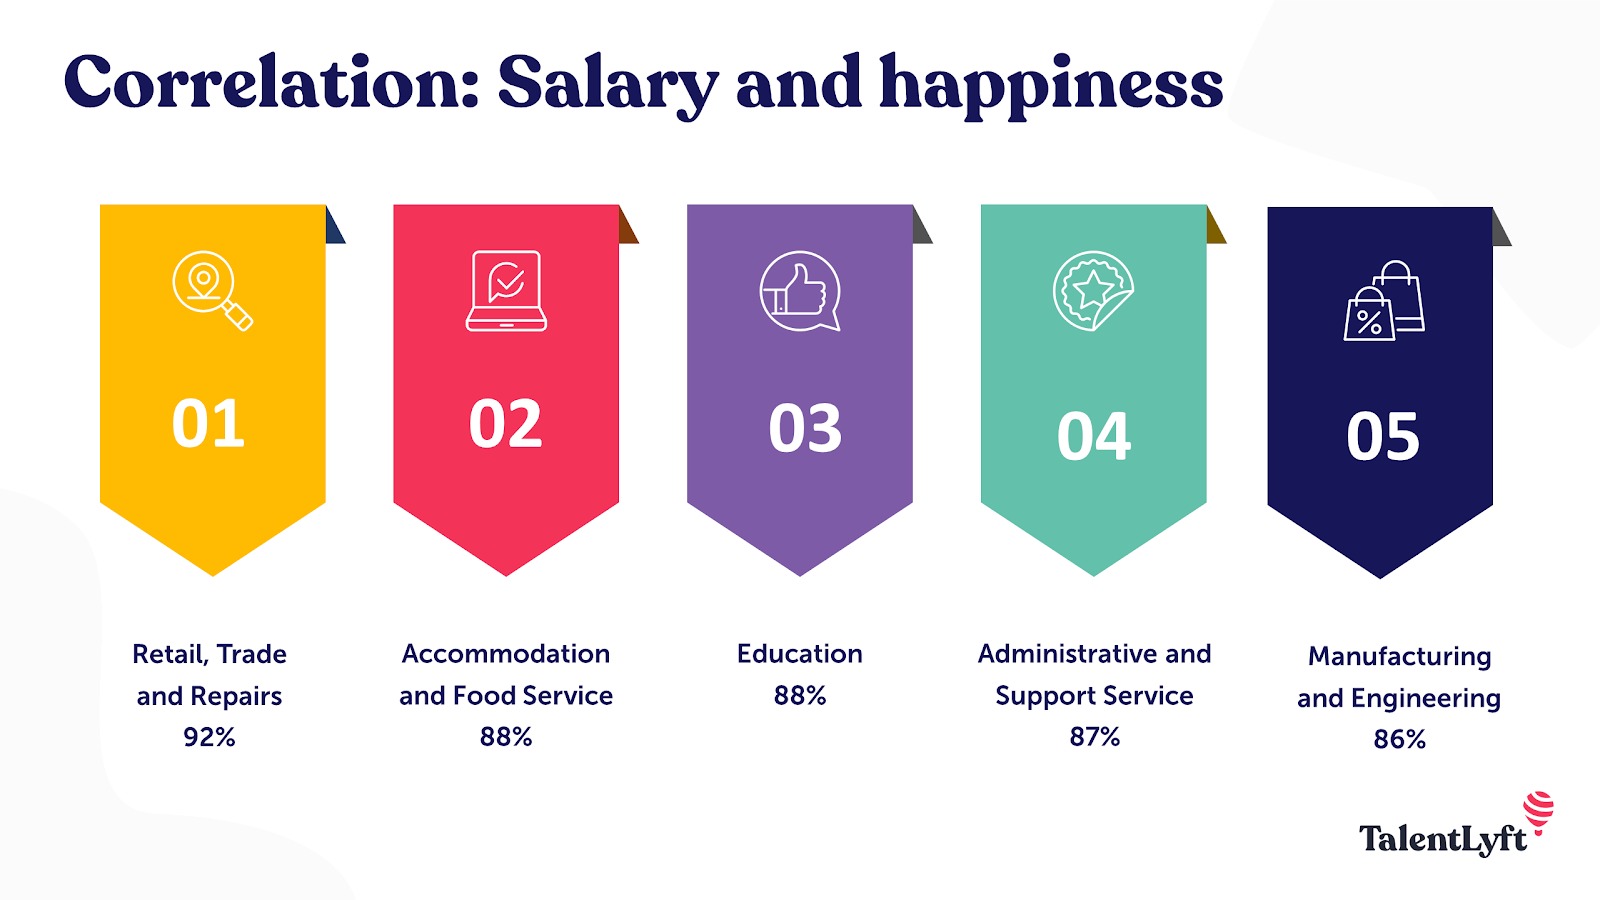 Correlation between salary and happiness at work